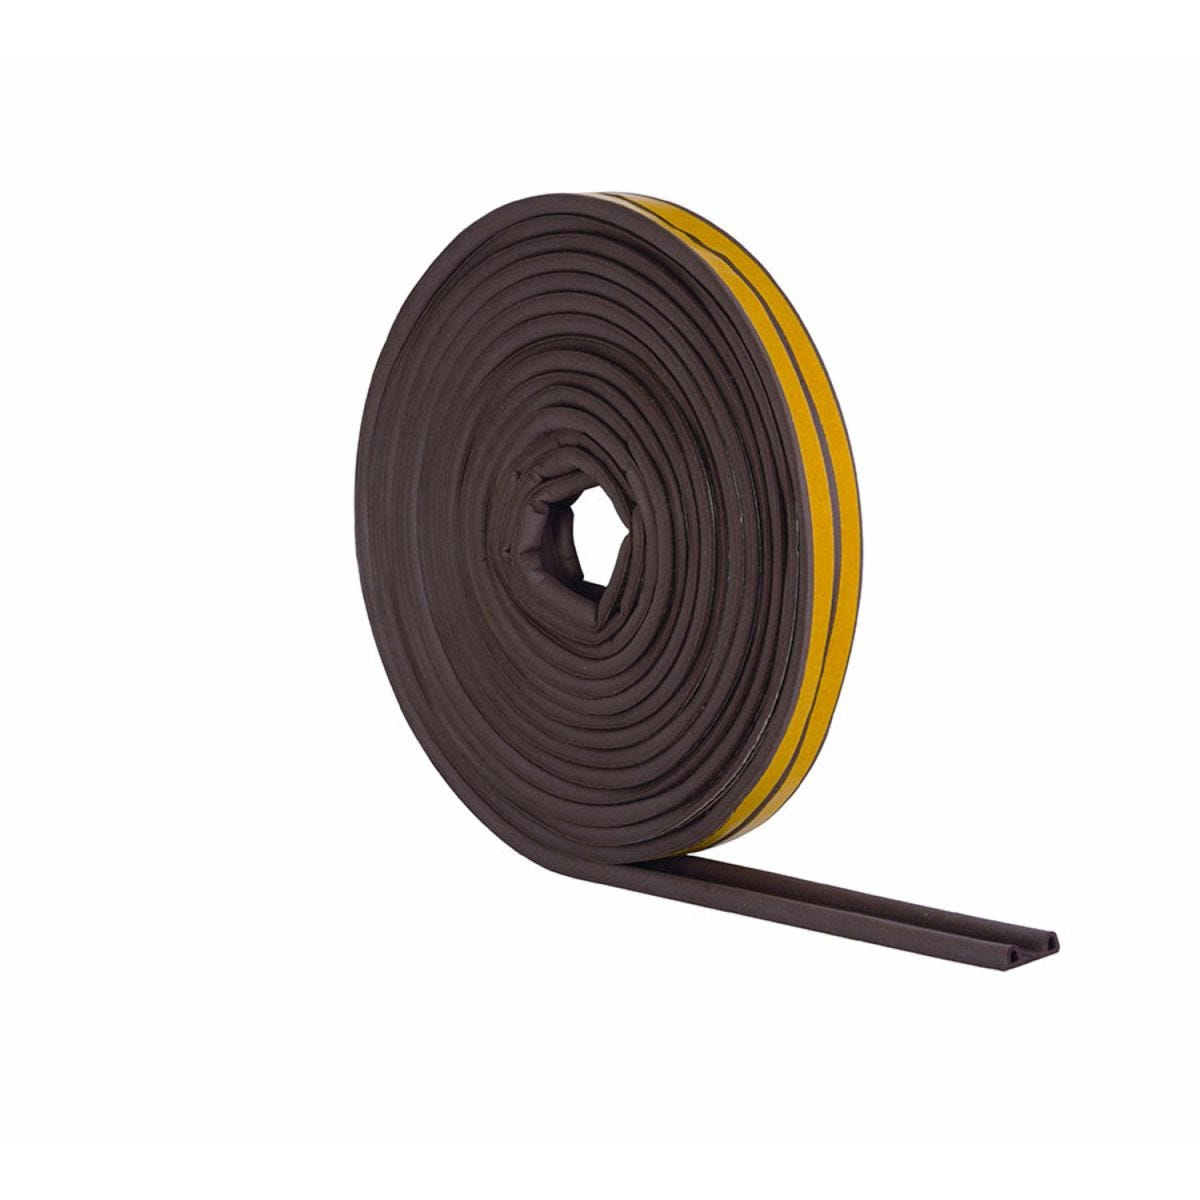 Stormguard 'P' Profile Rubber Draught Seal – 5m, Brown